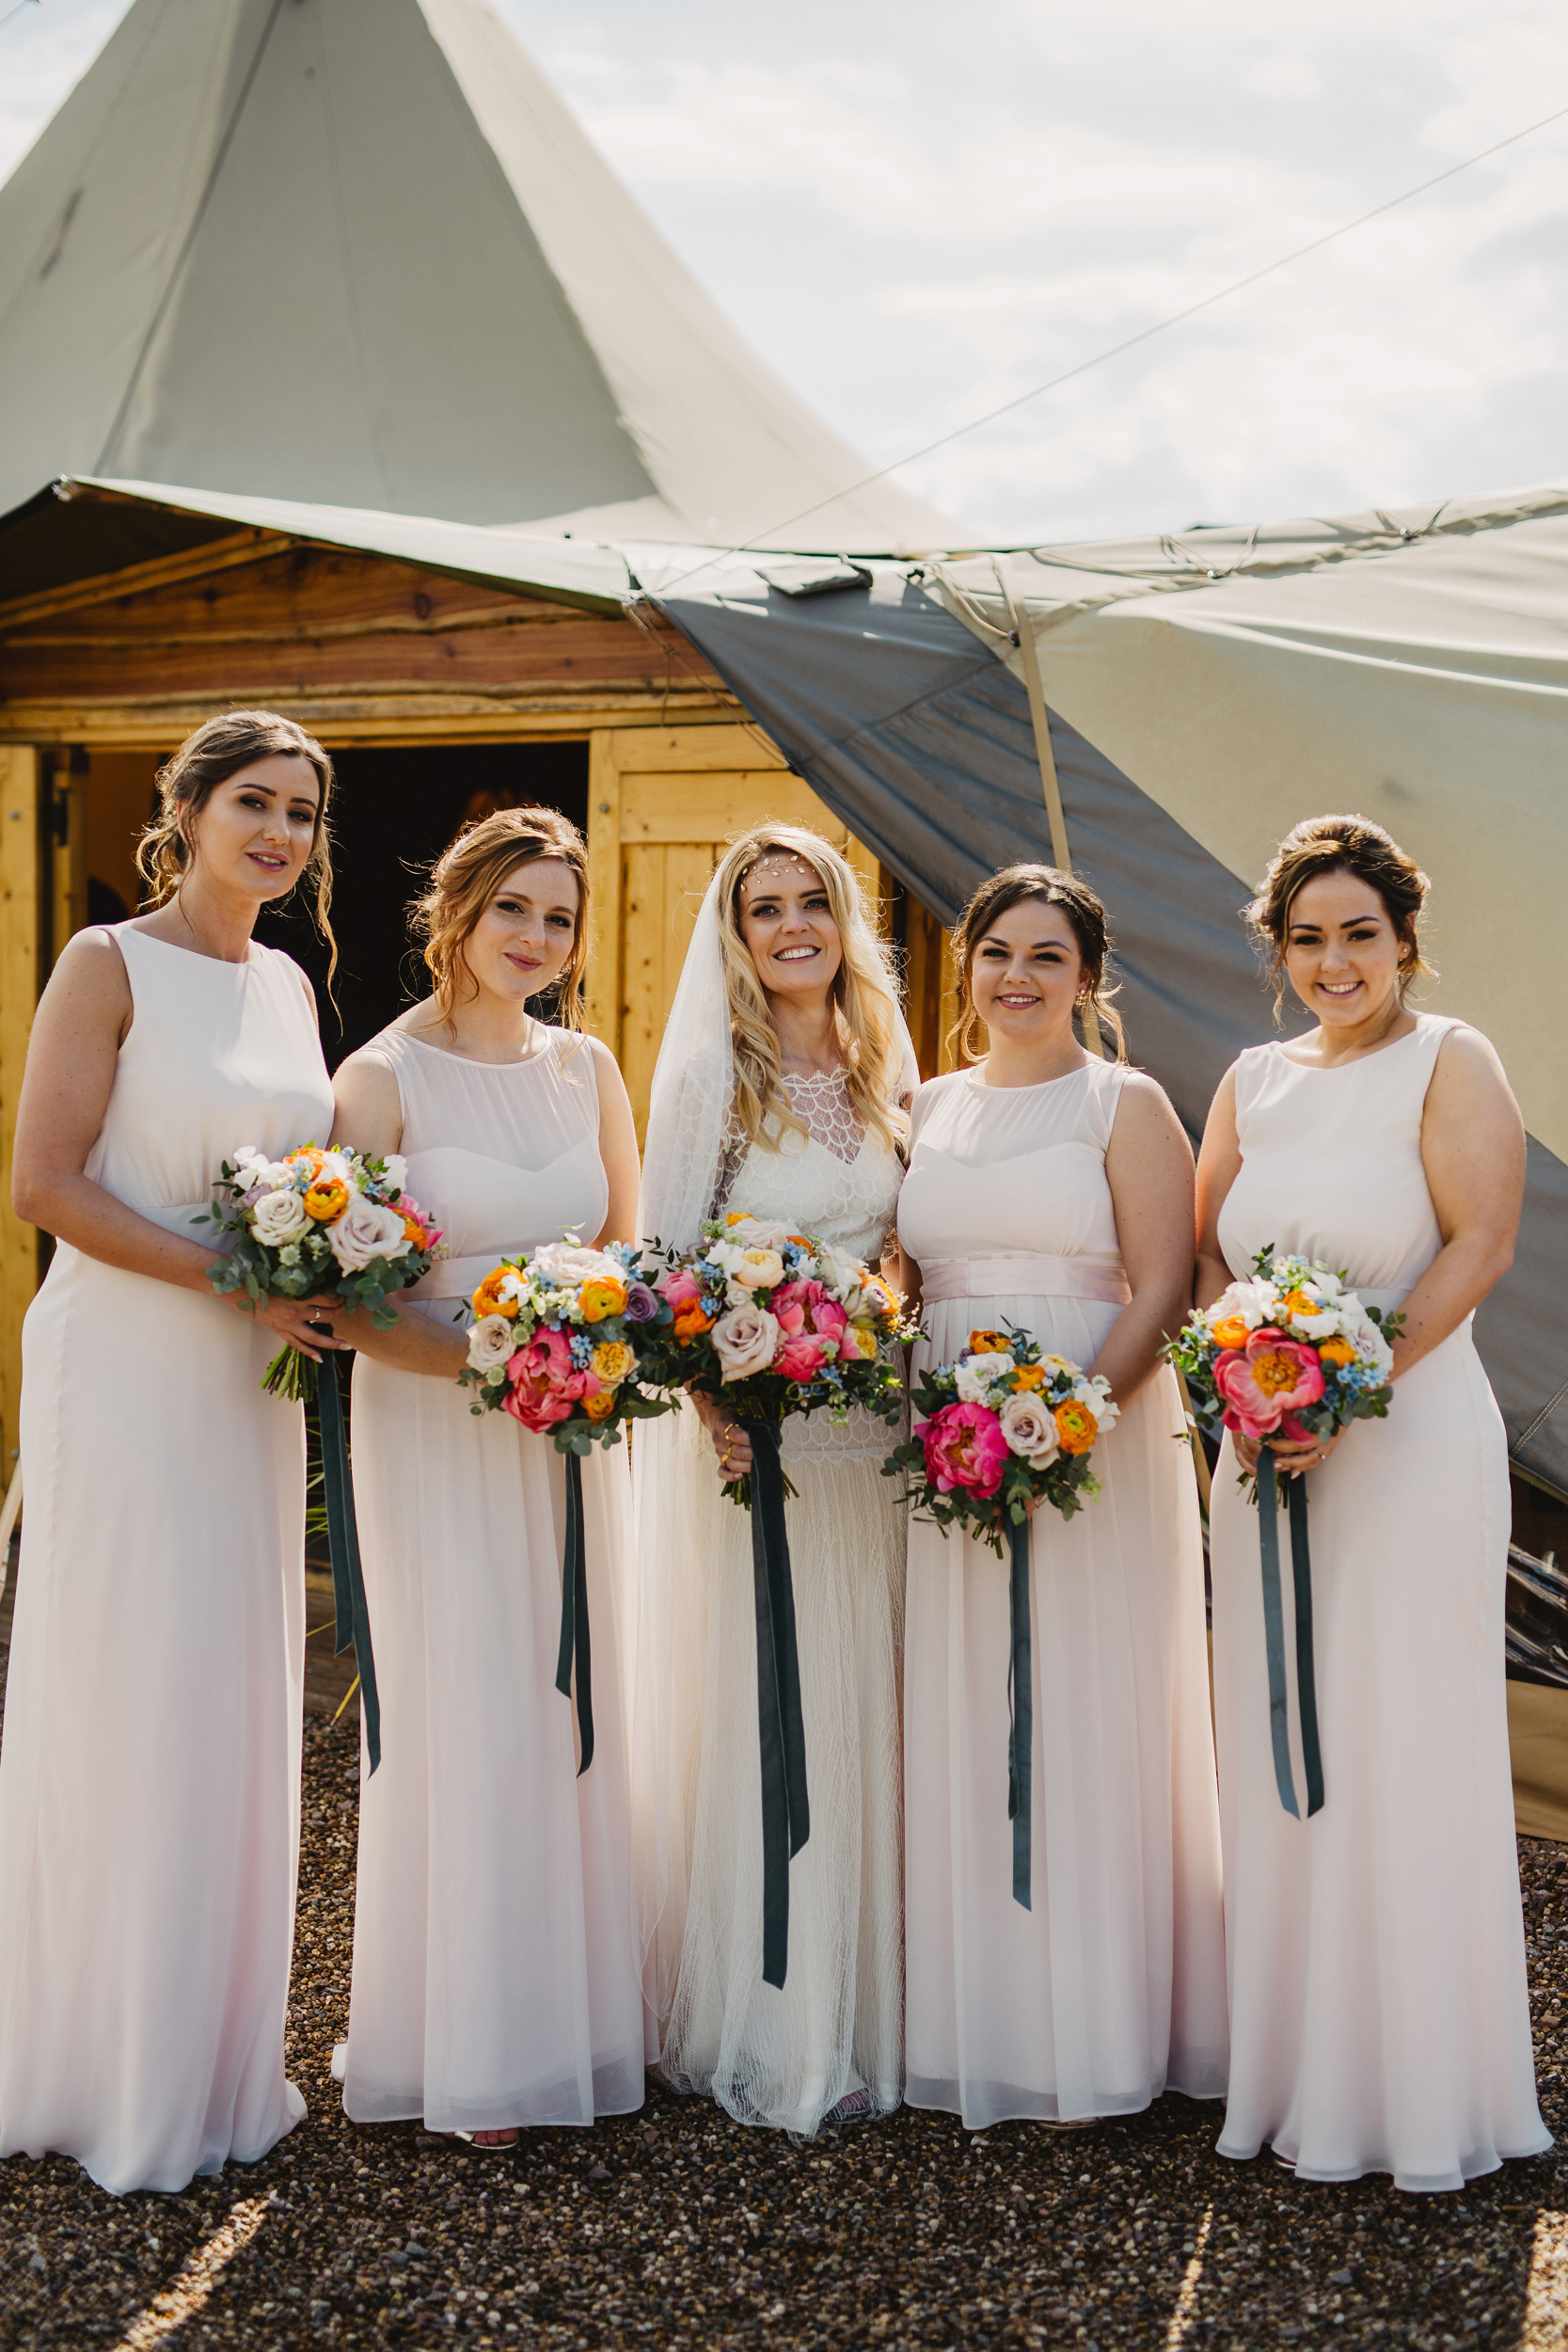 Gemma-Bohemian-Outdoor-Tipi-Wedding-Laid-Back-Relaxed-Family-Wedding-Kate-Beaumont-Astilbe-by-S6-Photography-Sheffield-29.jpg